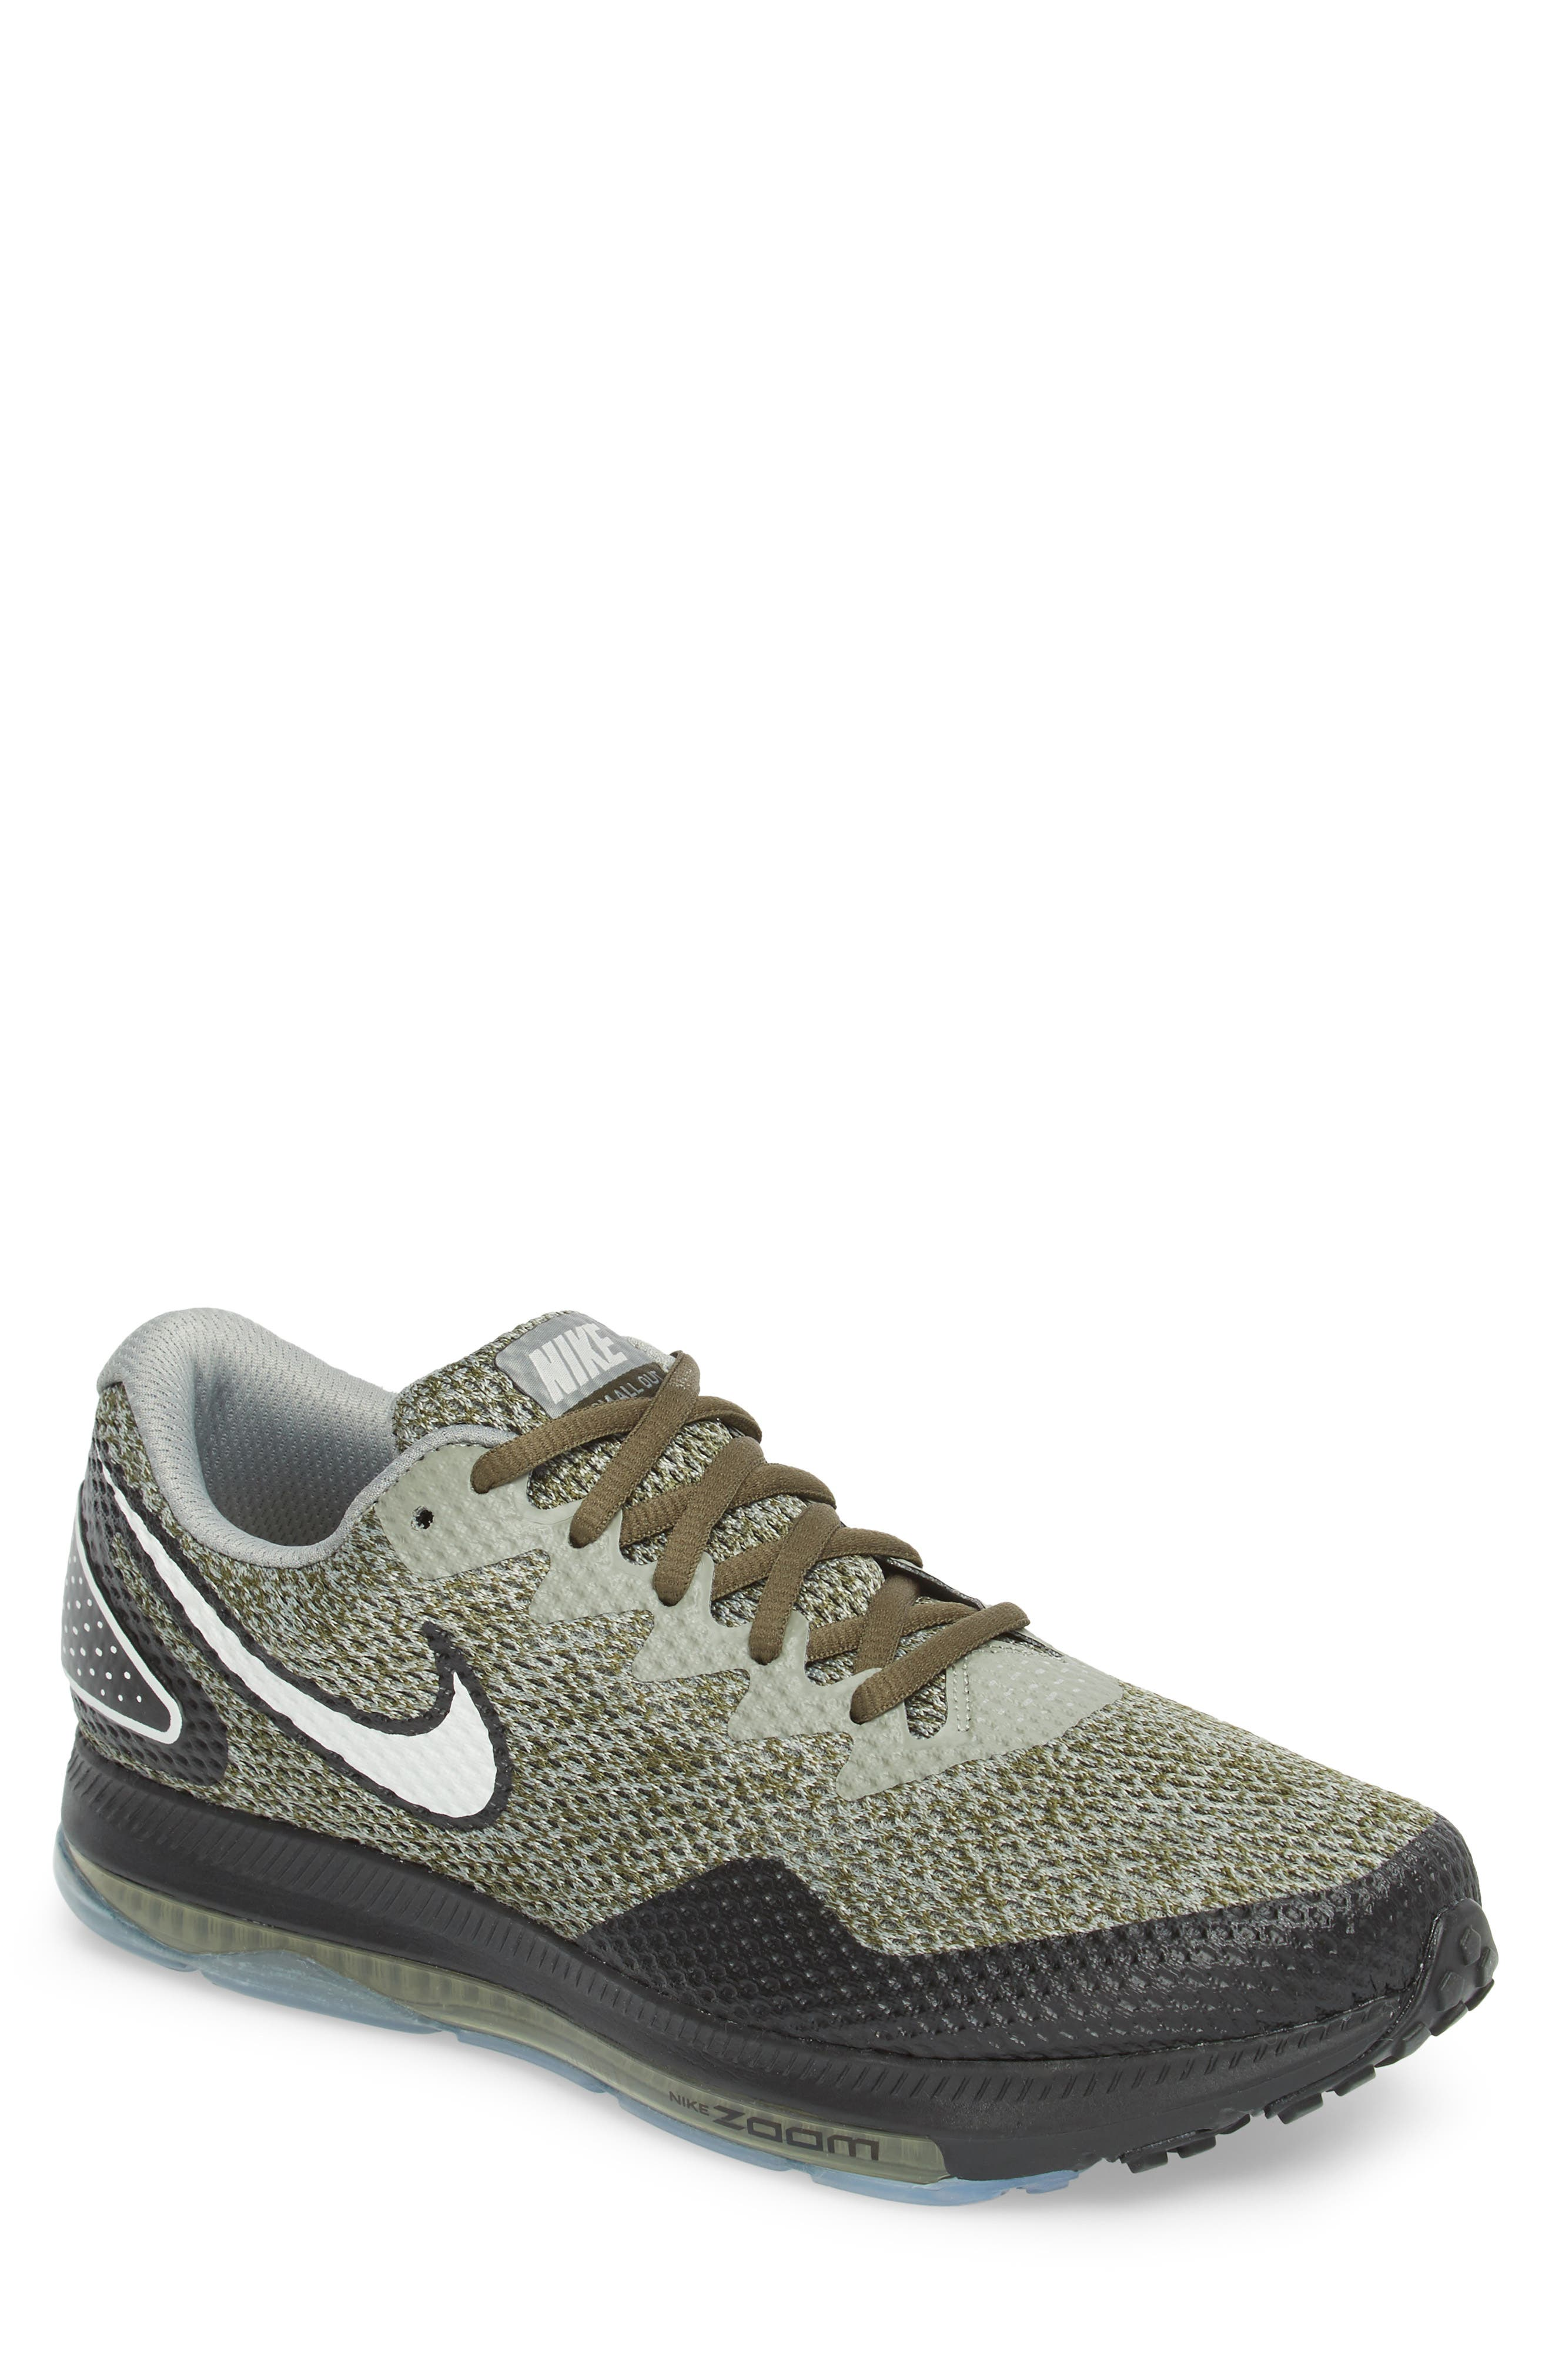 Main Image - Nike Zoom All Out Low 2 Running Shoe (Men)